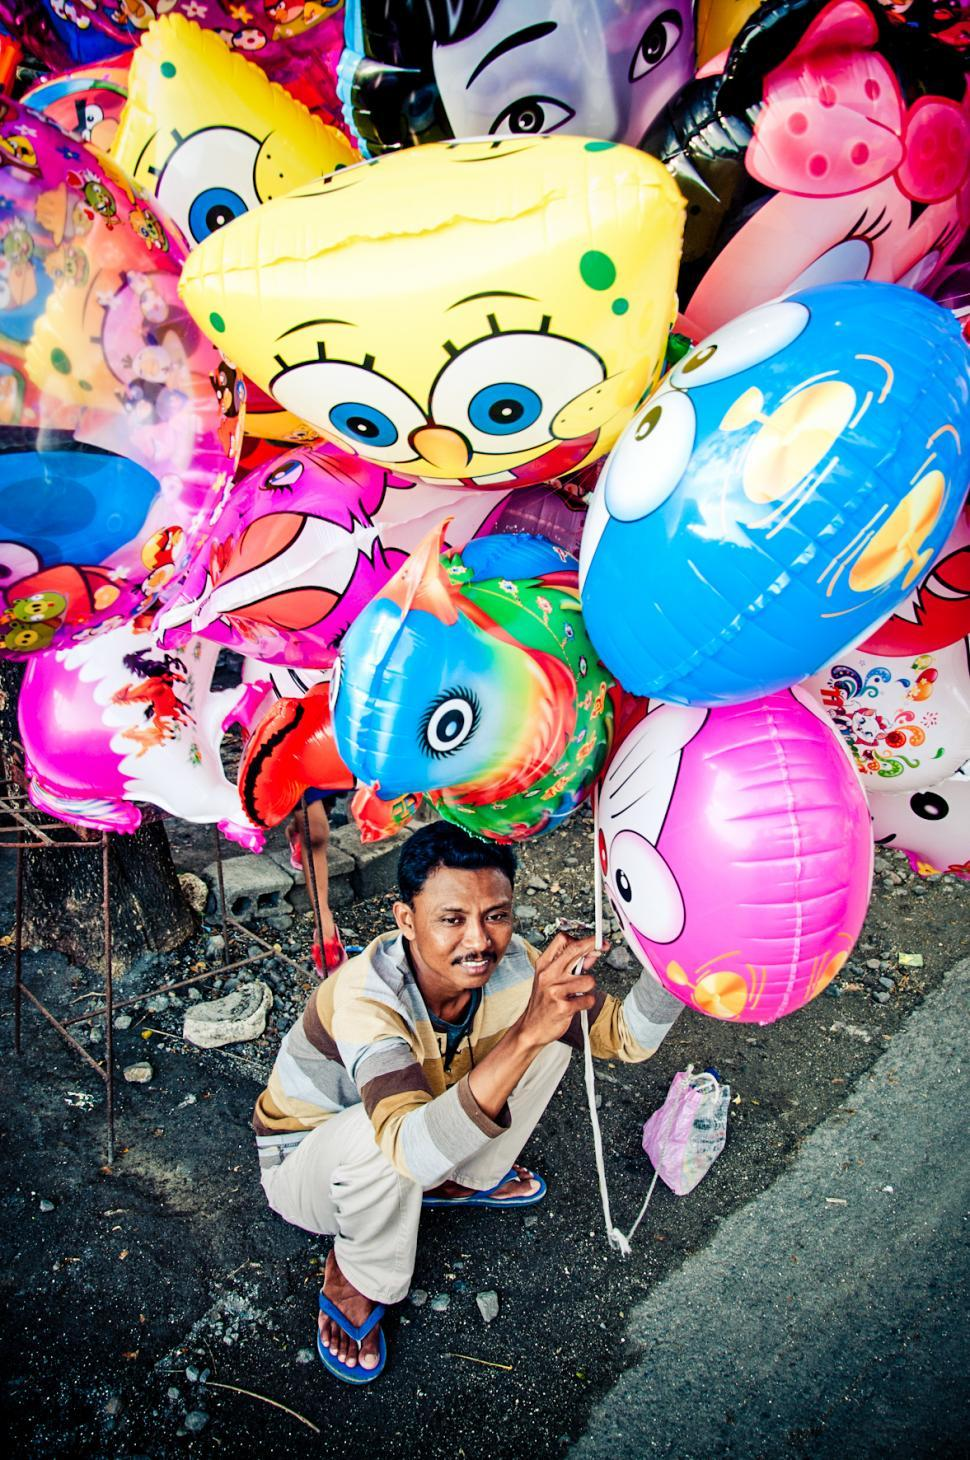 Download Free Stock HD Photo of Asian man selling balloons in the street Online